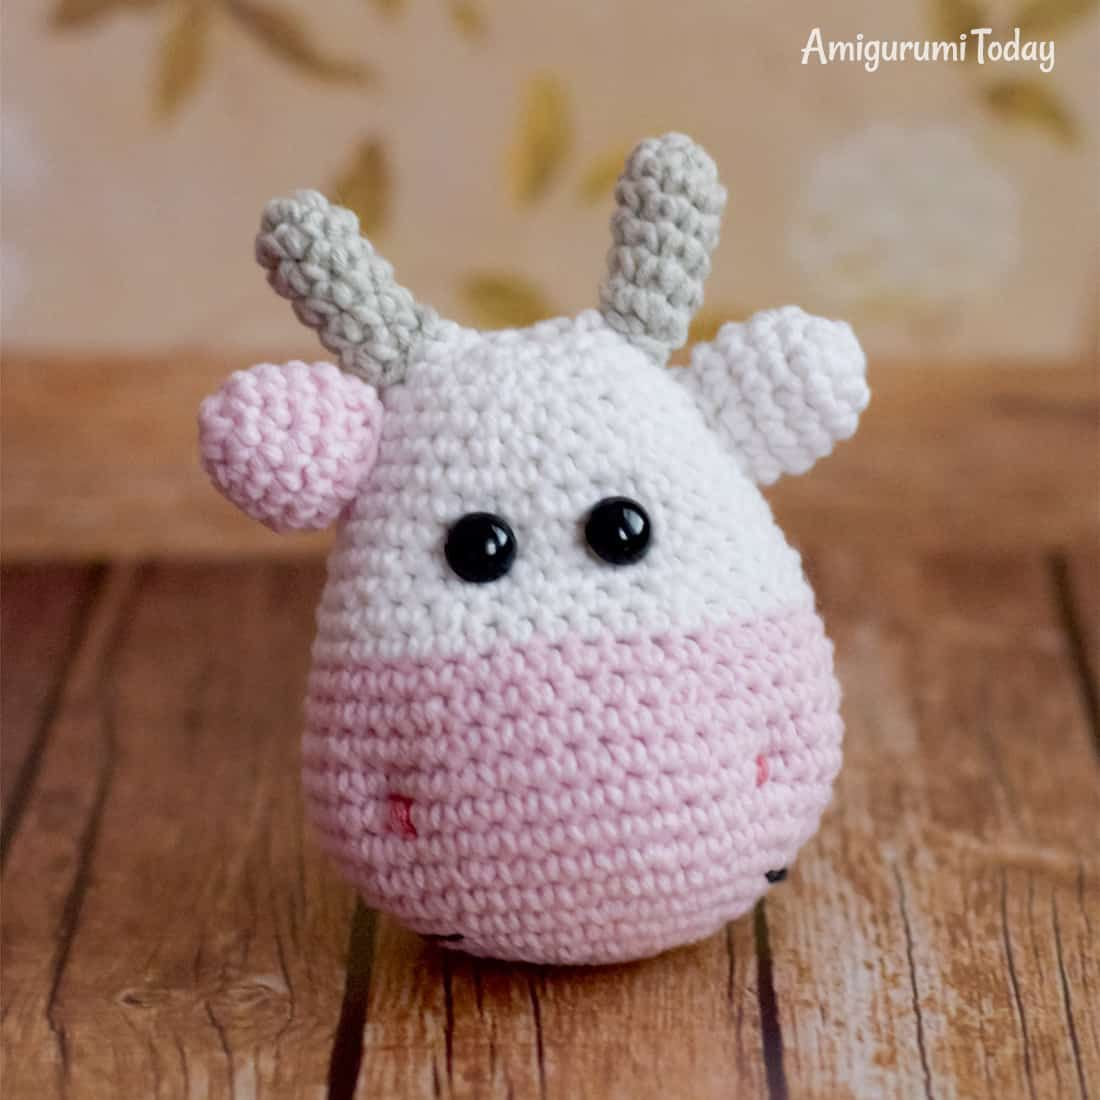 Amigurumi Today - Page 2 of 11 - Free amigurumi patterns and ... | 1100x1100